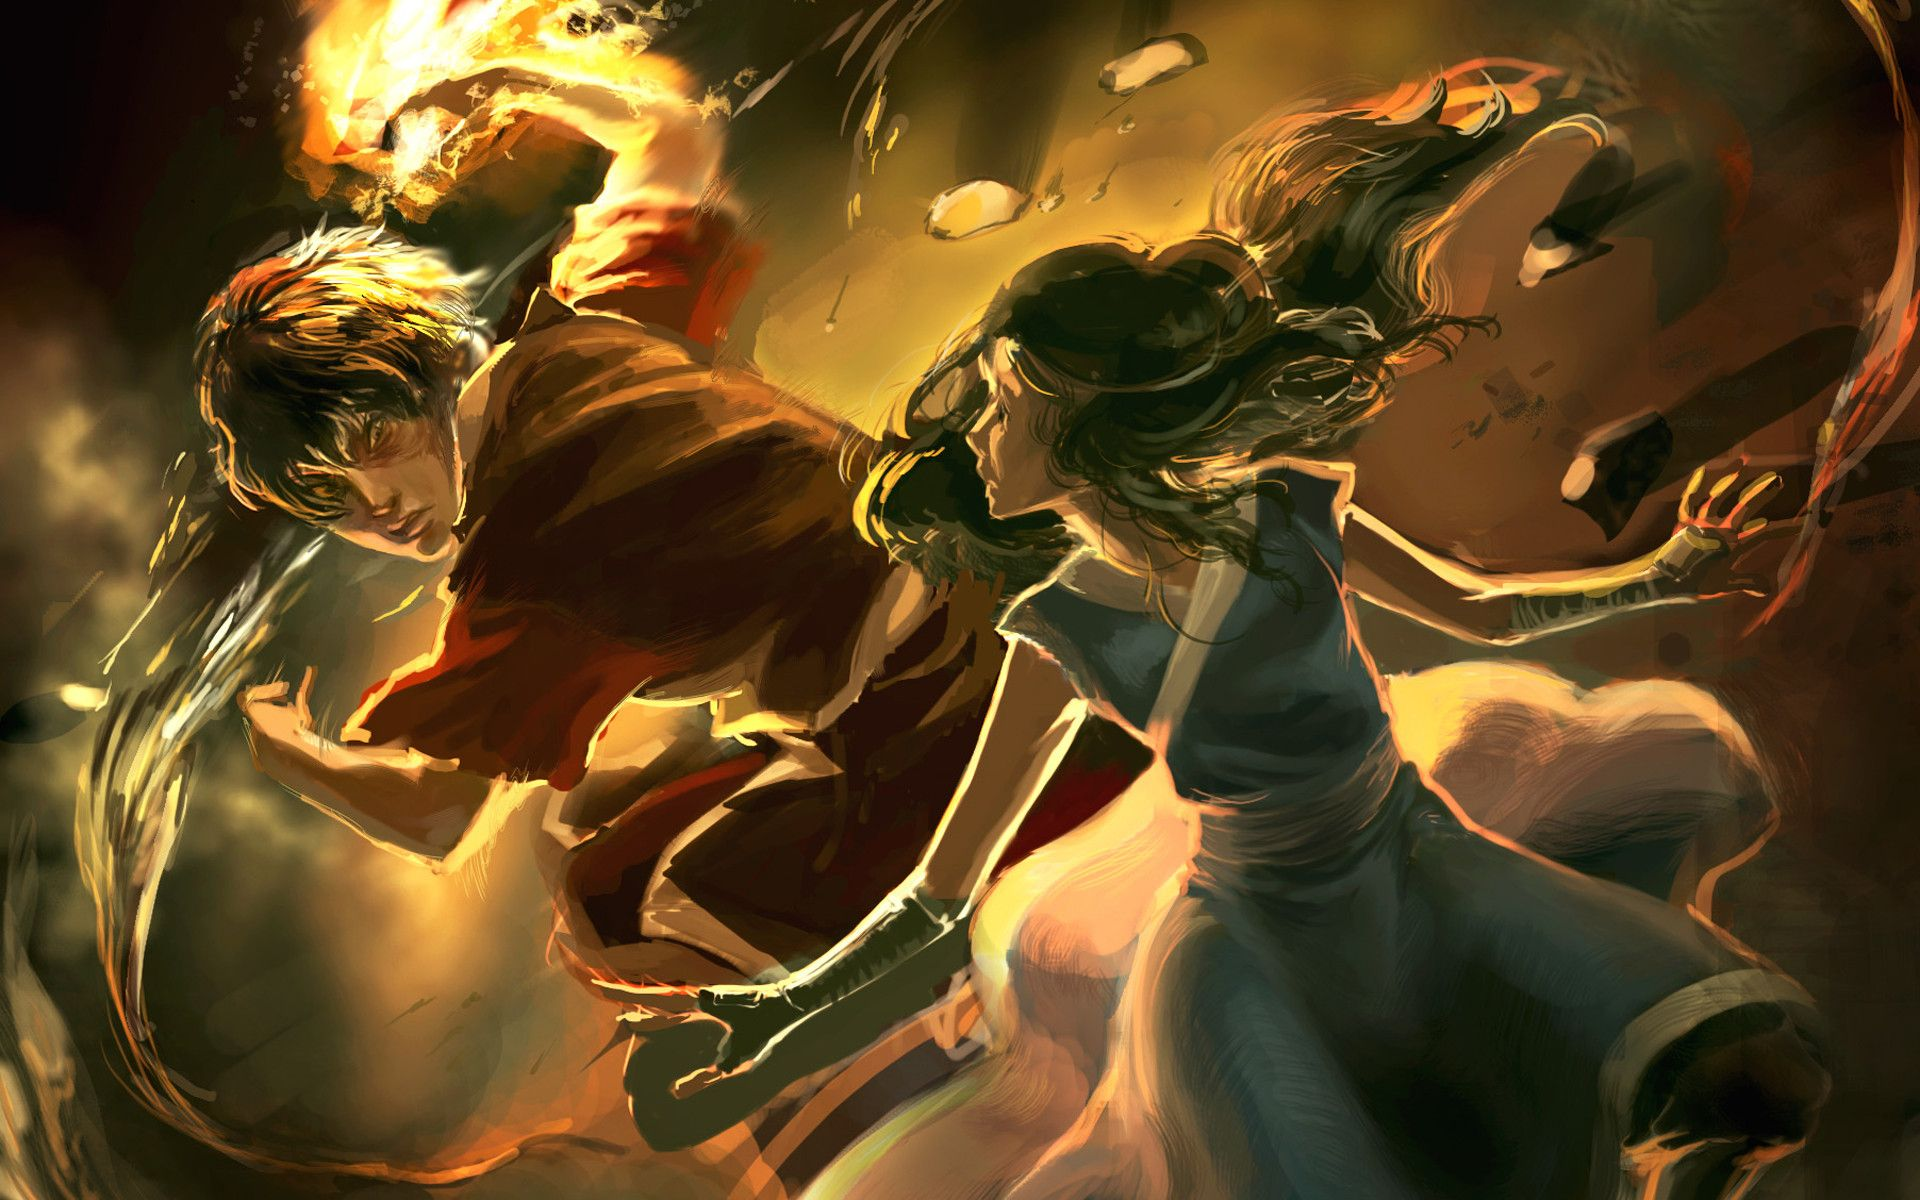 Avatar The Last Airbender Backgrounds Avatar The Last Airbender Art The Last Airbender Avatar The Last Airbender